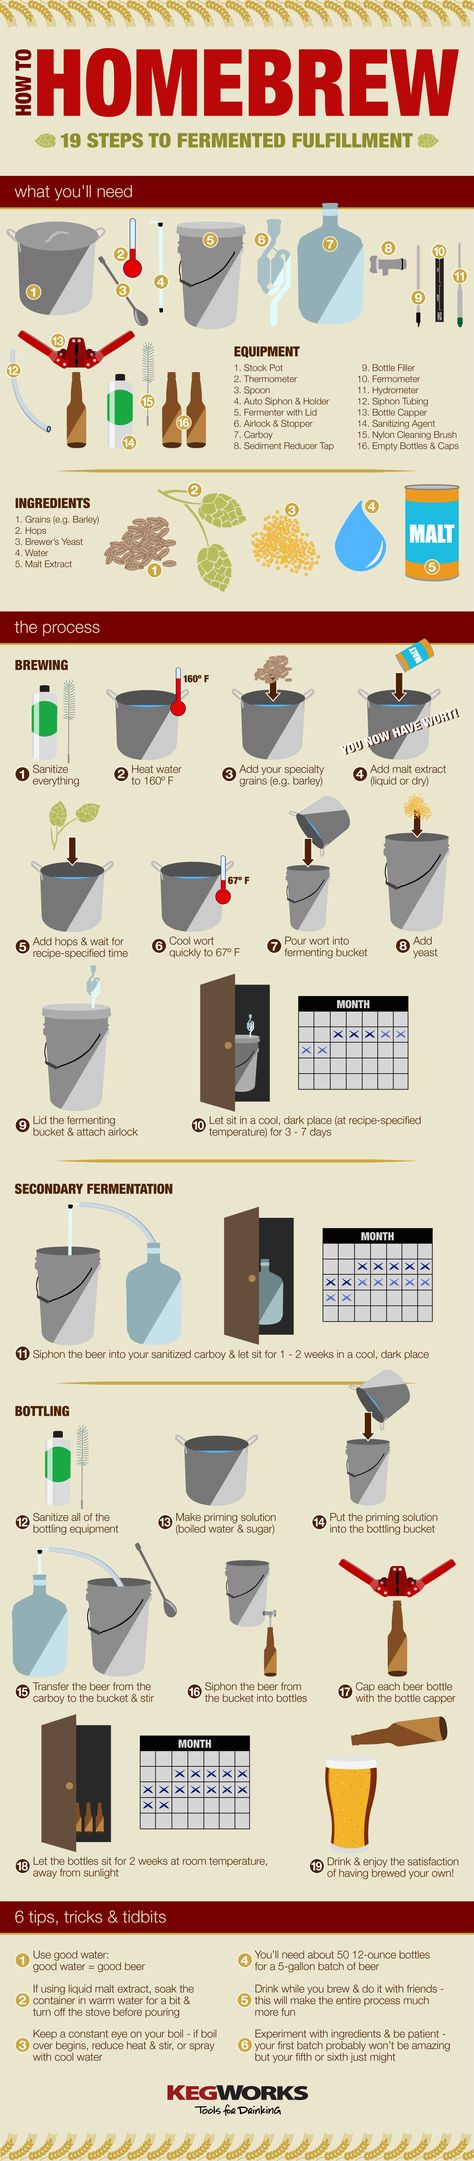 How to Homebrew - 19 Steps to Fermented Fulfillment